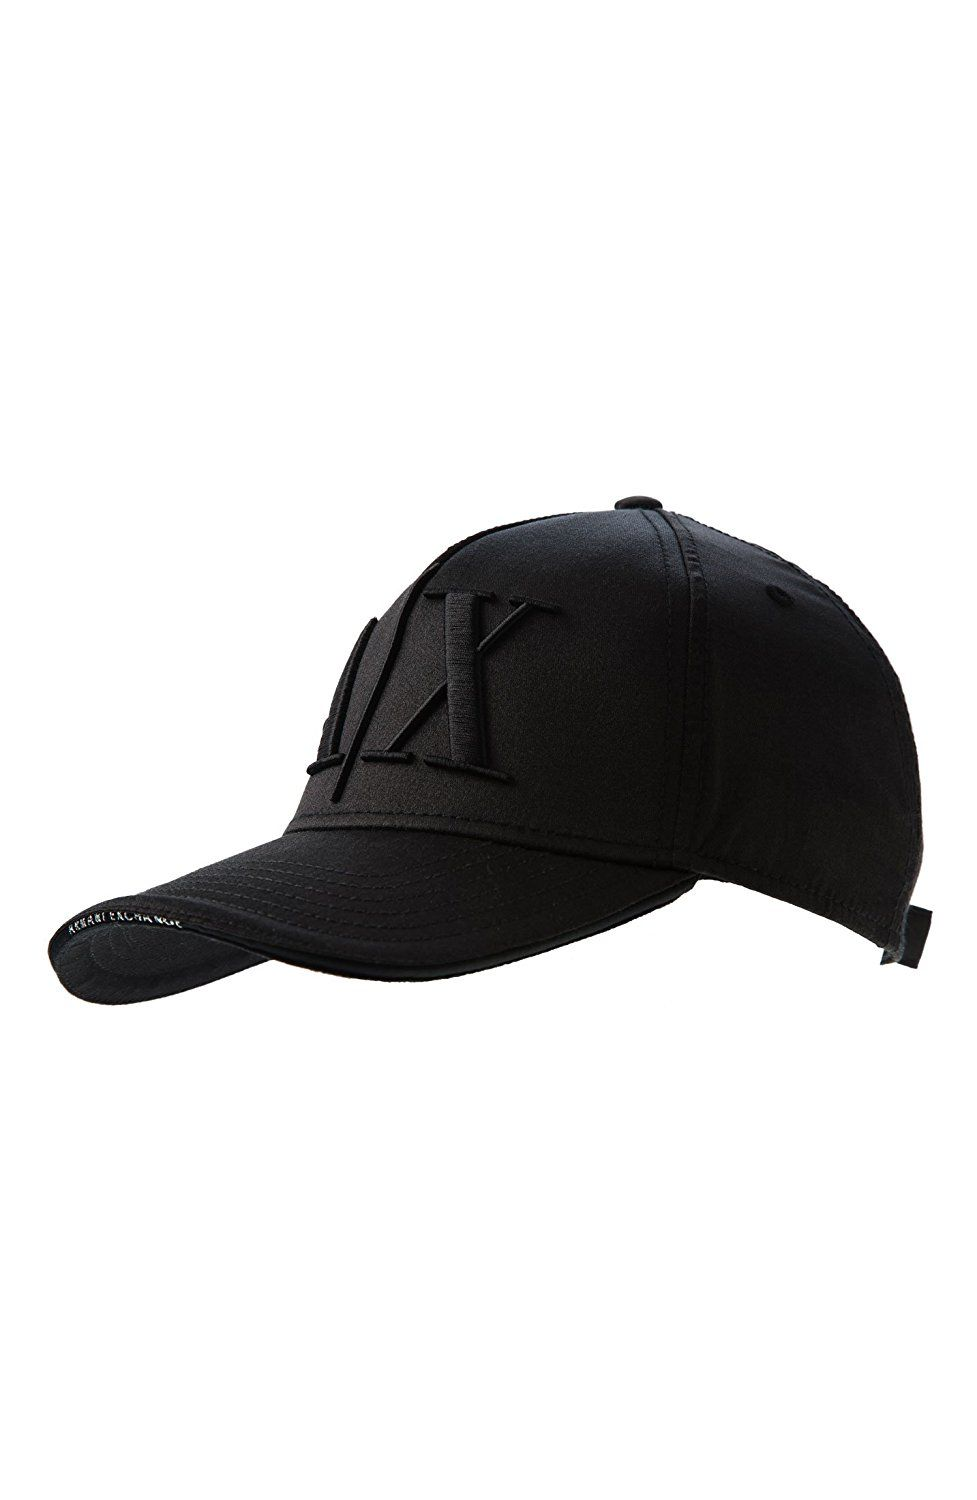 8cf6feff7a9 Armani Exchange Mens Sateen Logo Baseball Hat